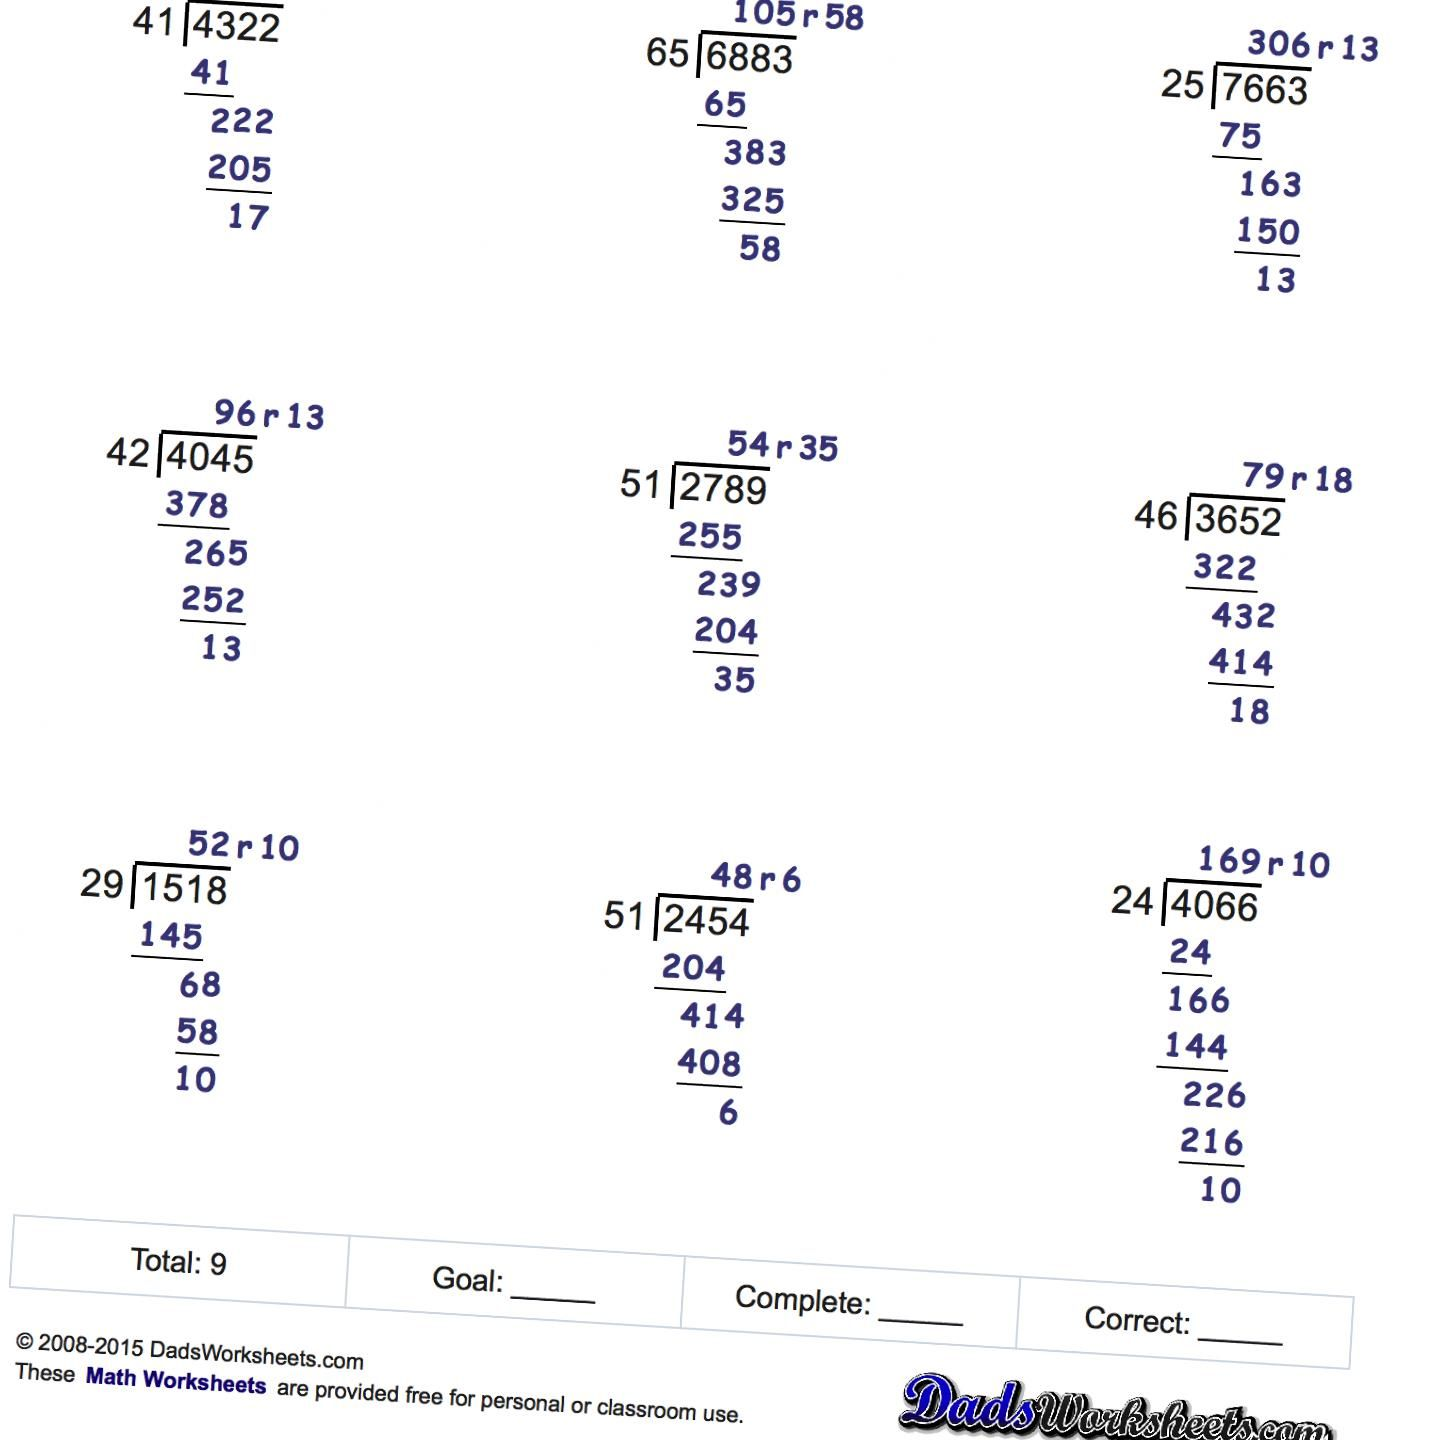 Free Printable Long Division Worksheets With Multiple Digit Divisors With And Without